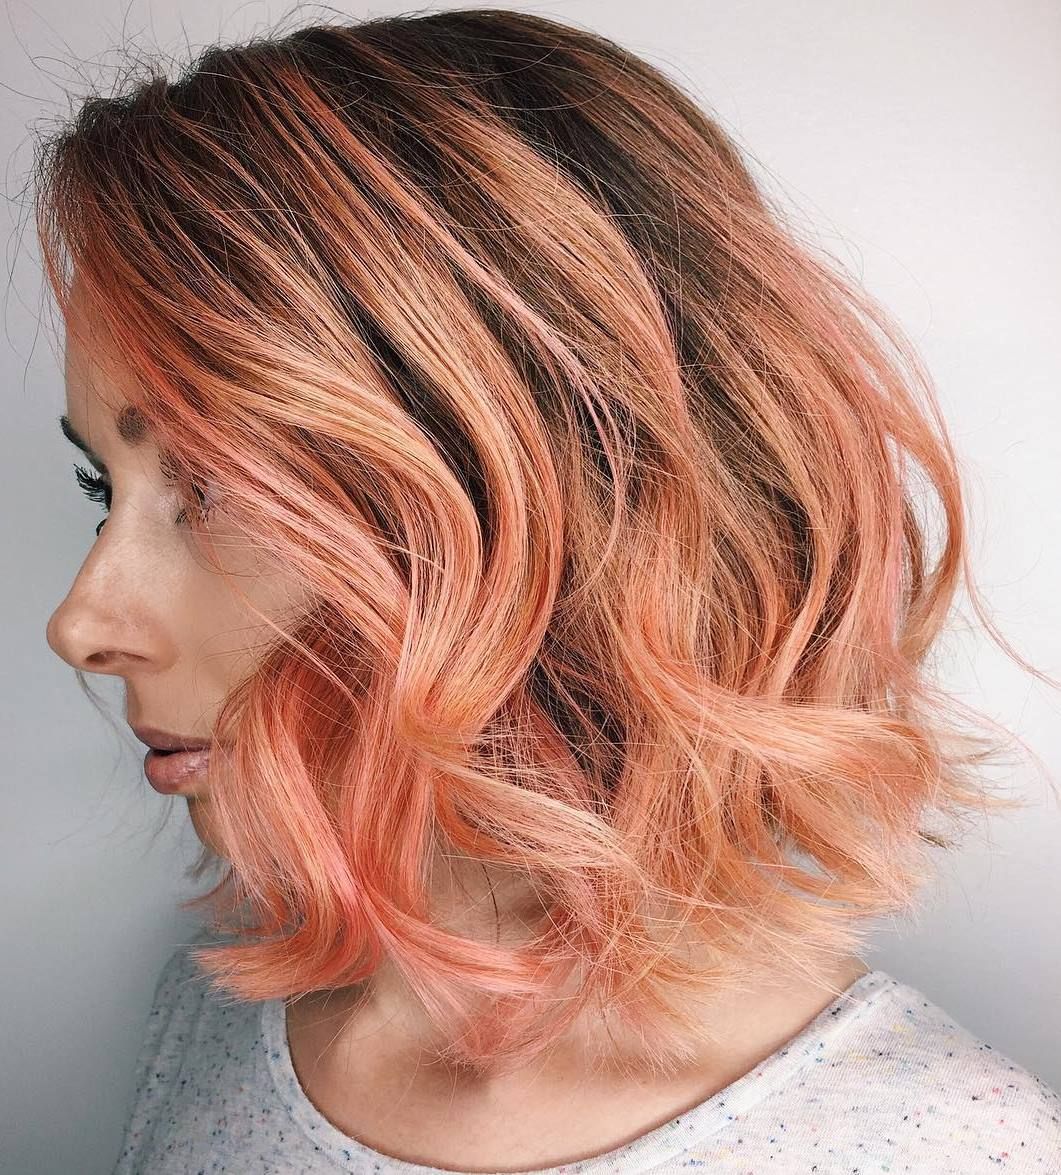 Peachy Keen Spring Hair Color